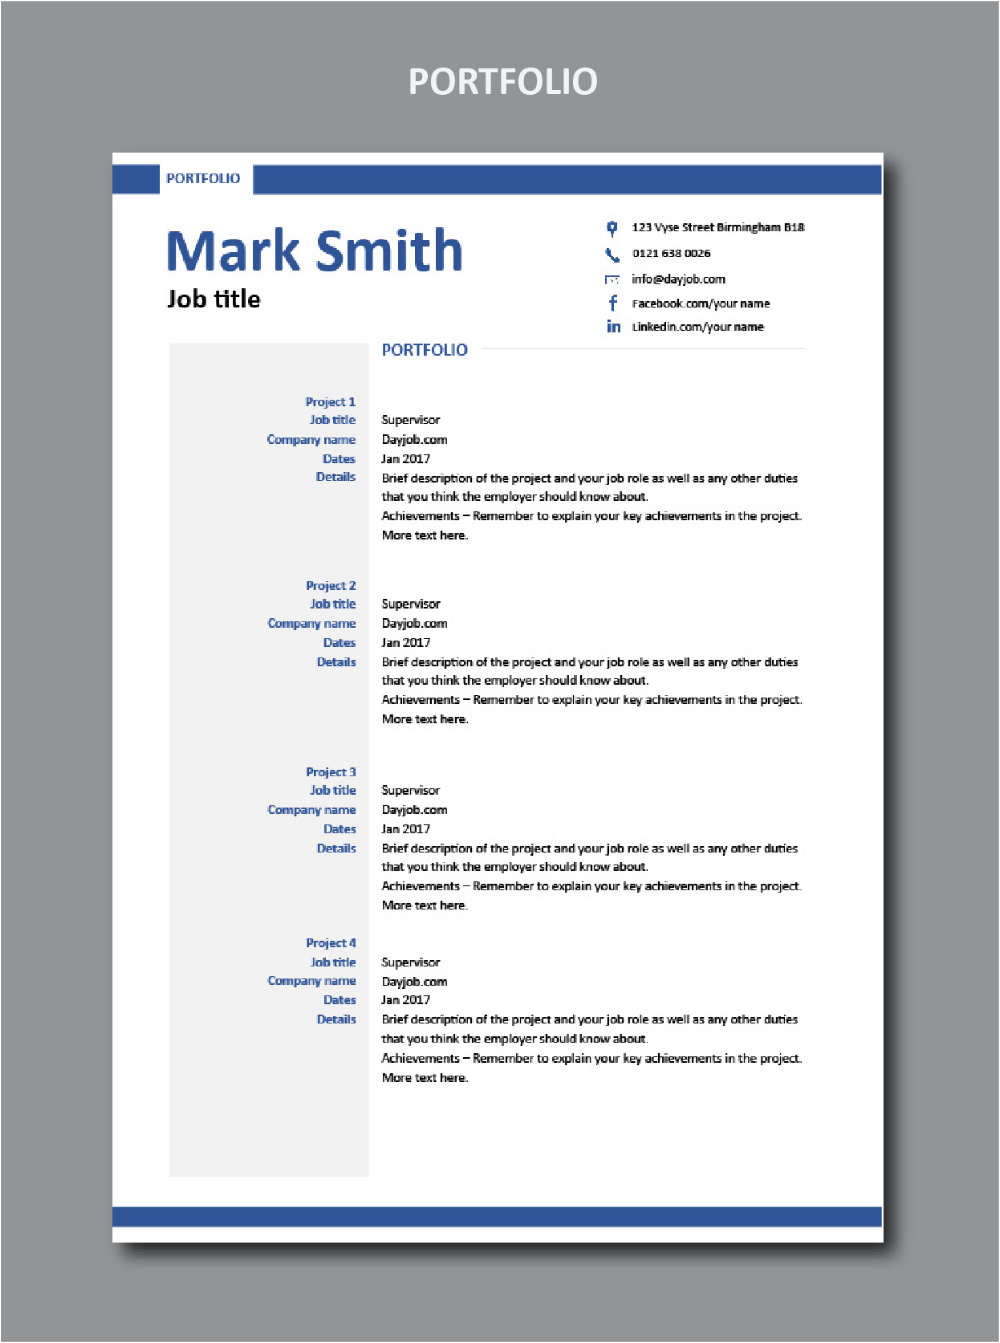 modern resume template 2, example to help you get noticed pharmacy technician experience cv profile summary sample for flight attendant with no